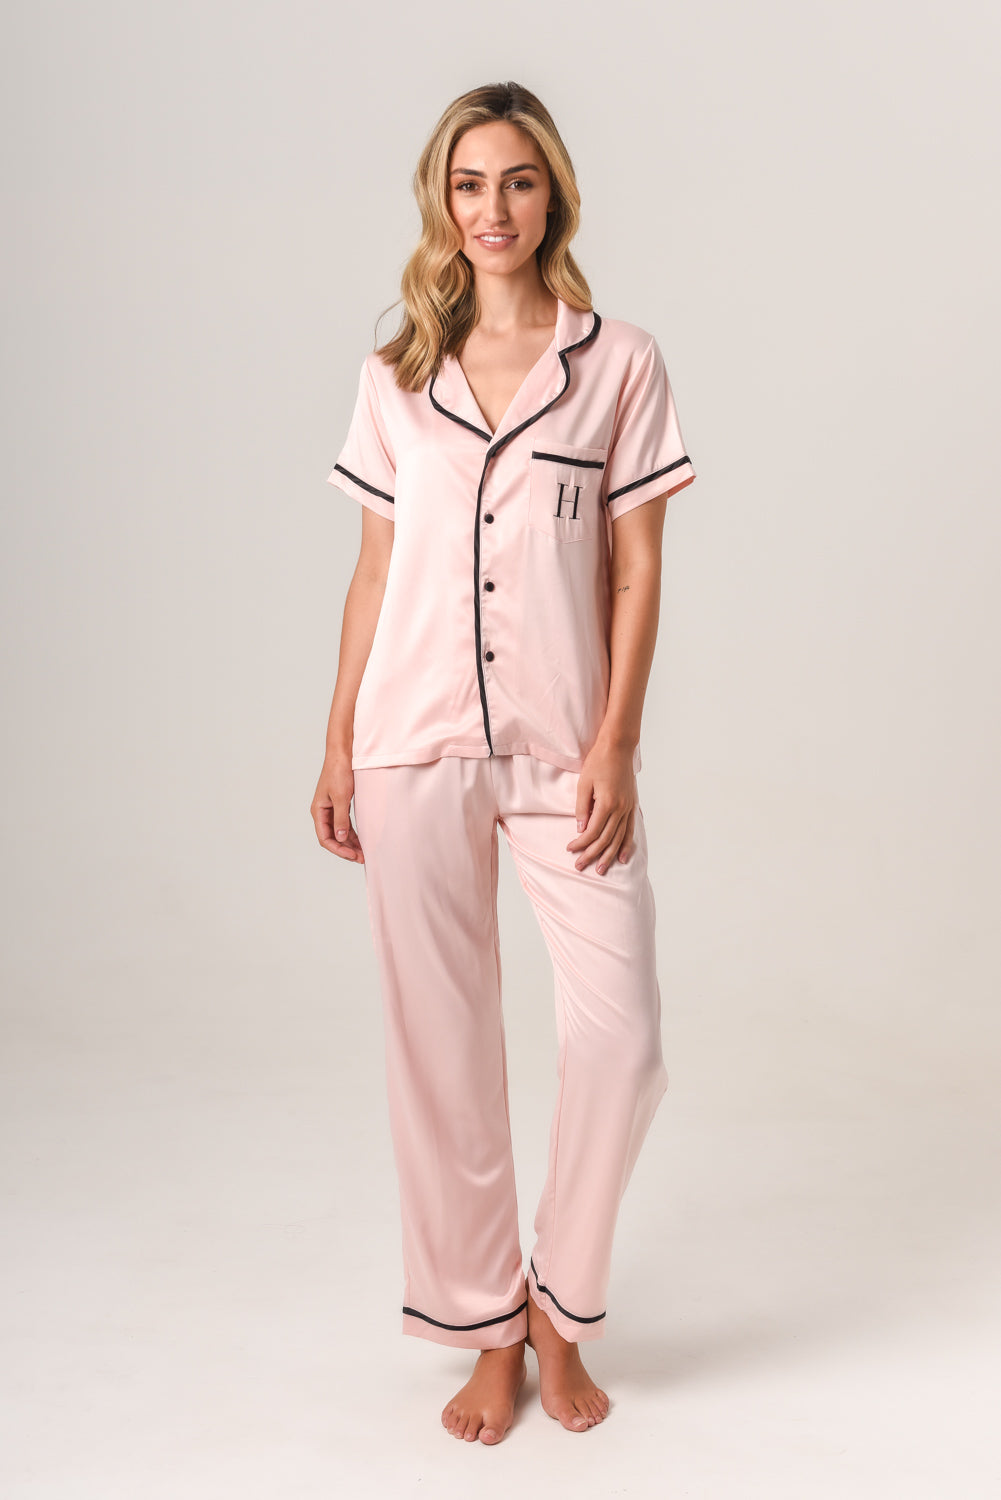 Luxurious Personalised Pyjamas - Blush (With Black) Autumn Set